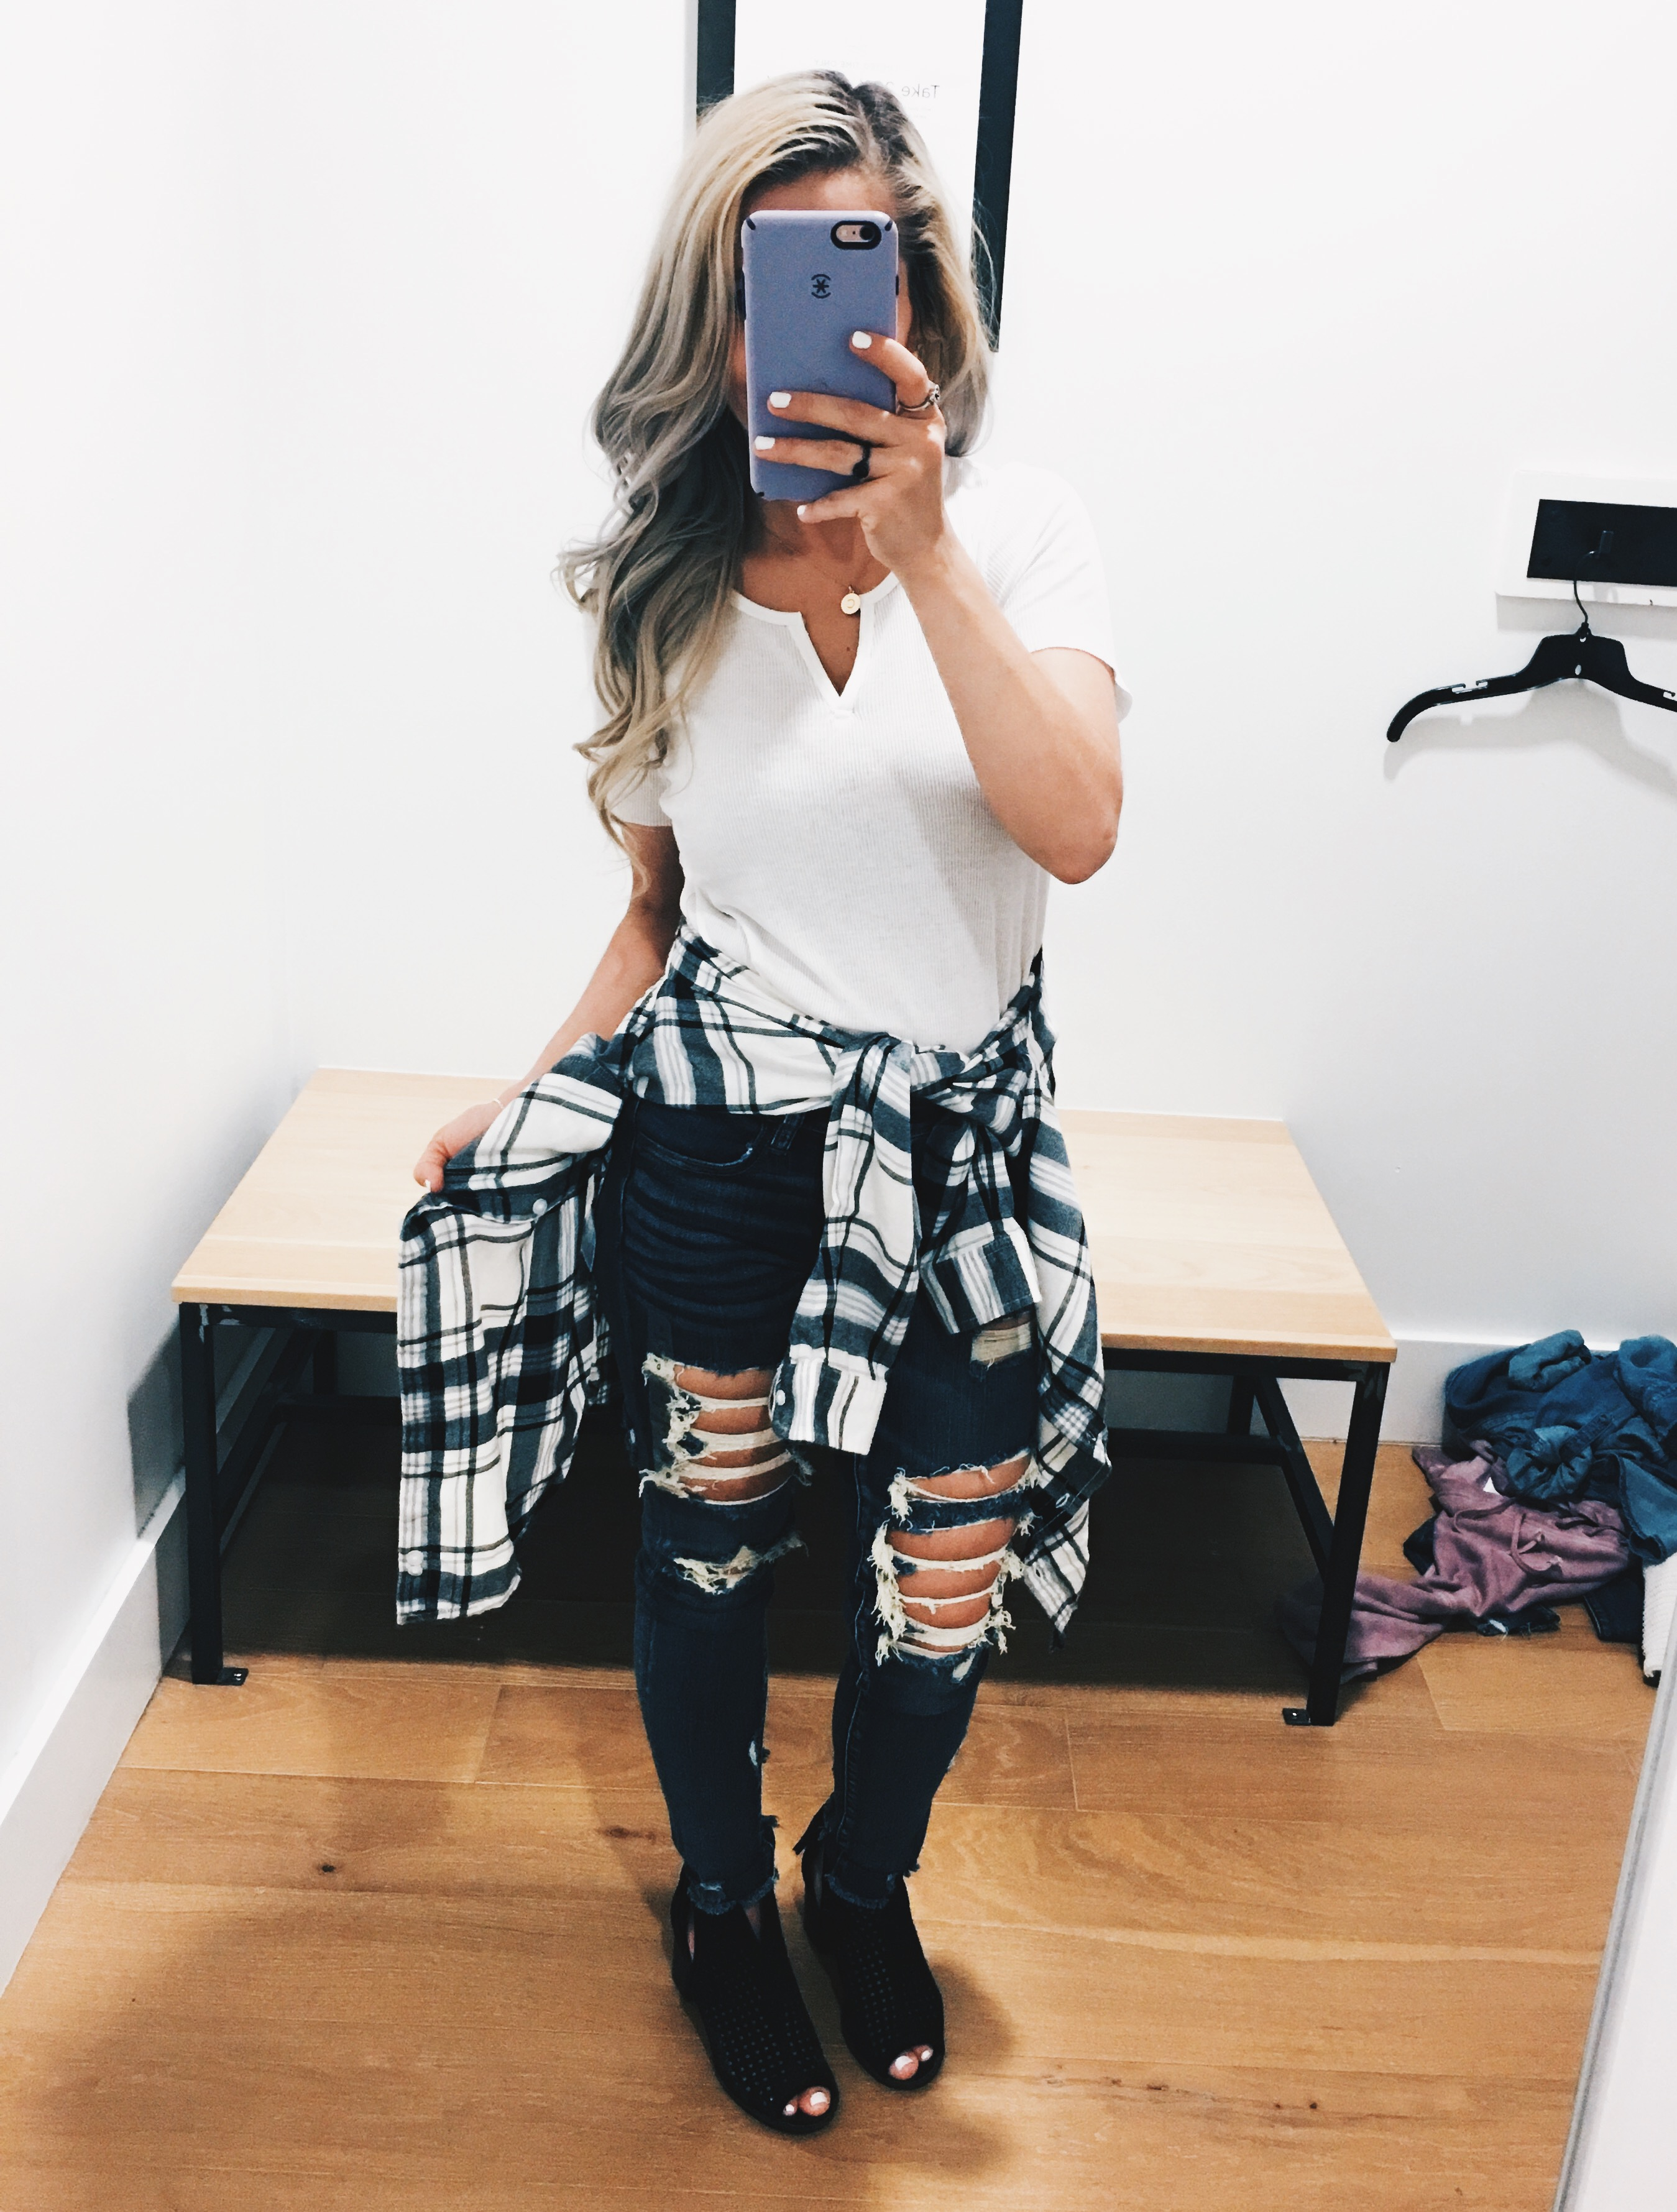 American Eagle Try On Fall 2018 - AE Try On Haul 2018 - American Eagle Try On Session - AE Try On Session - Petite fashion blogger showcases fall 2018 looks from American Eagle, including AE jeans, AE sweaters, and some perfect plaids! #LikeTKit #LTKunder50 #LTKunder100 #FashionBlogger #AExME